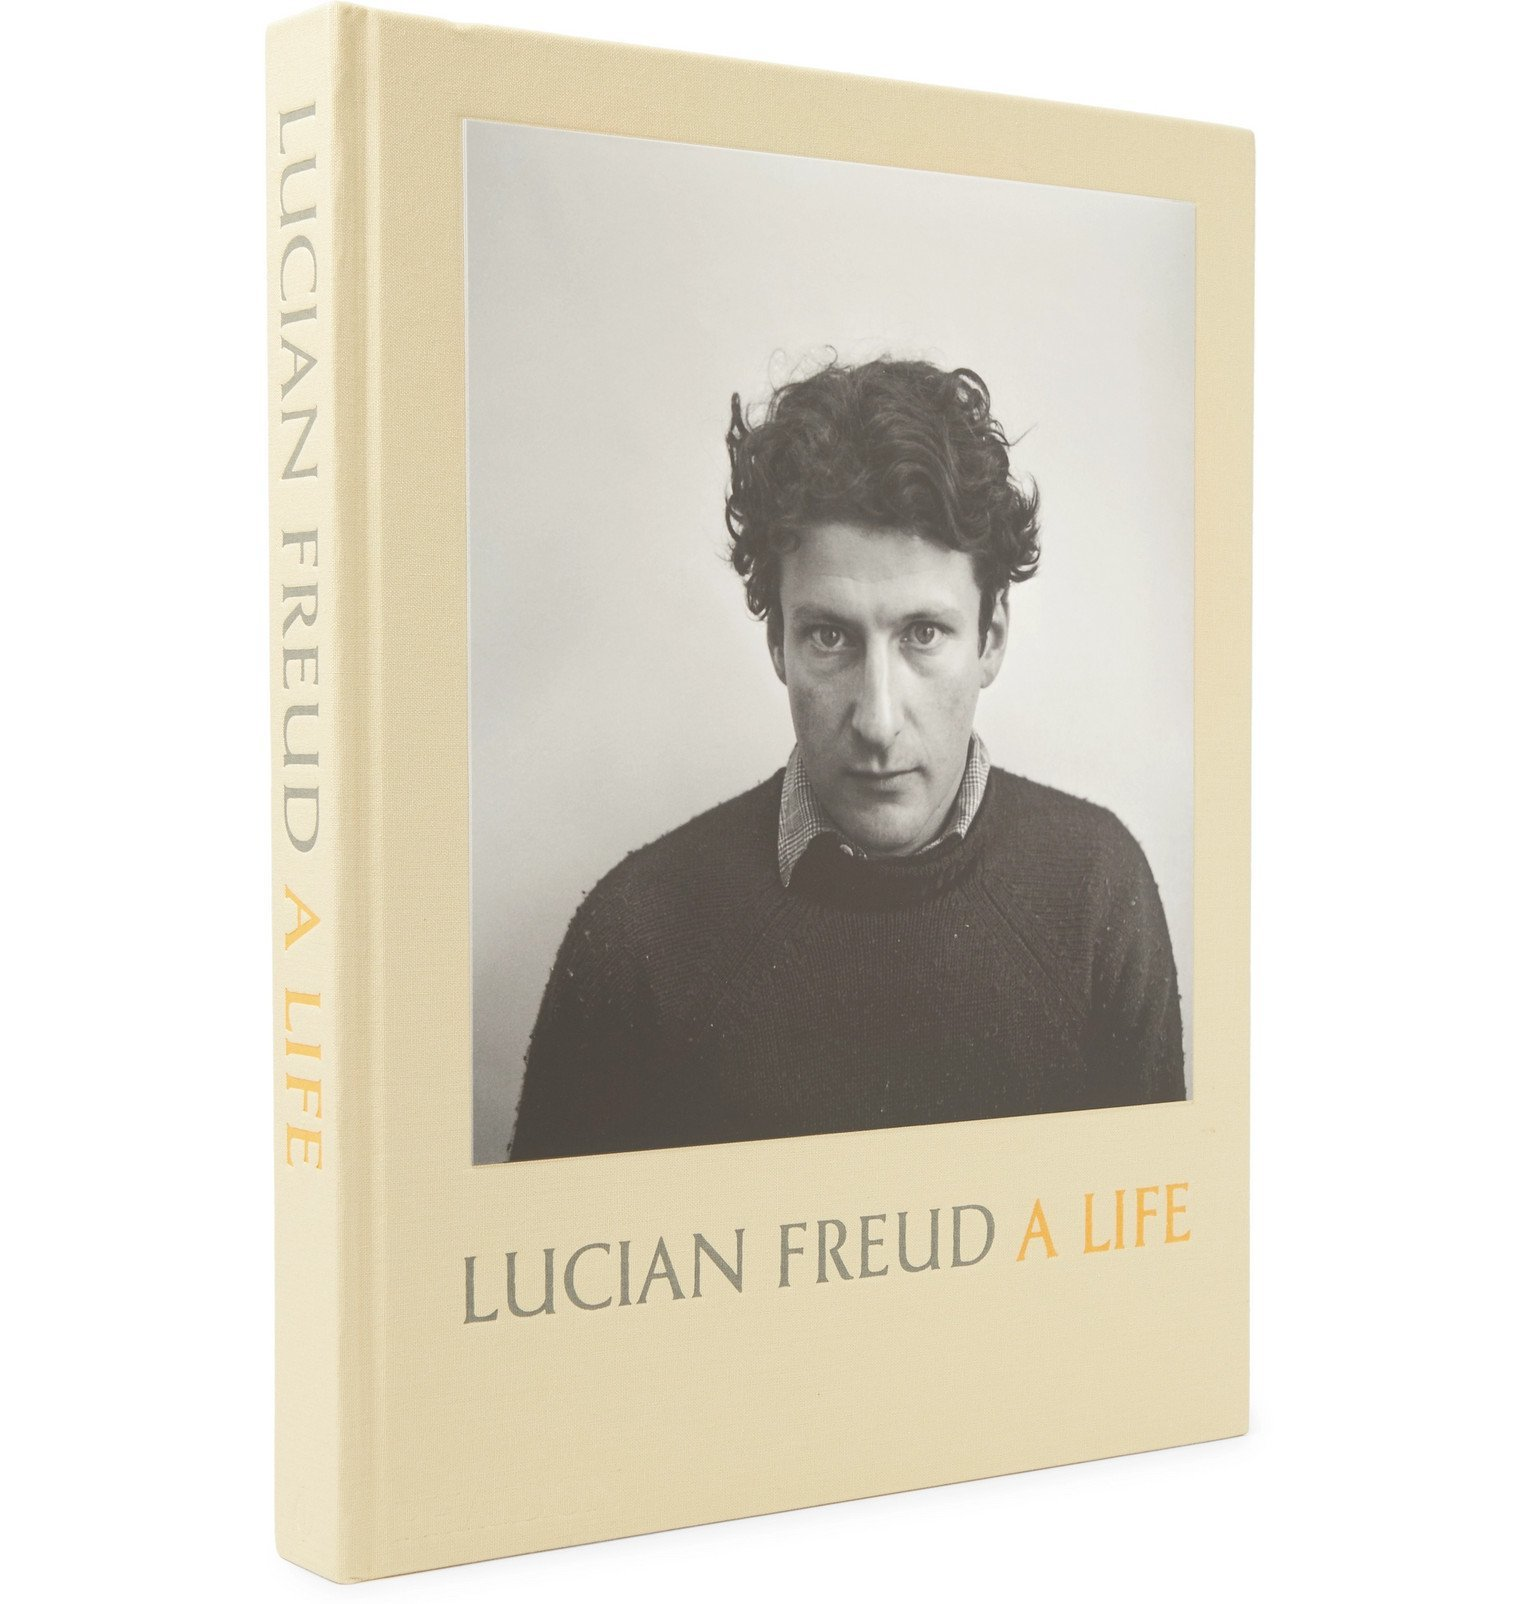 Photo: Phaidon - Lucian Freud: A Life Hardcover Book - Yellow